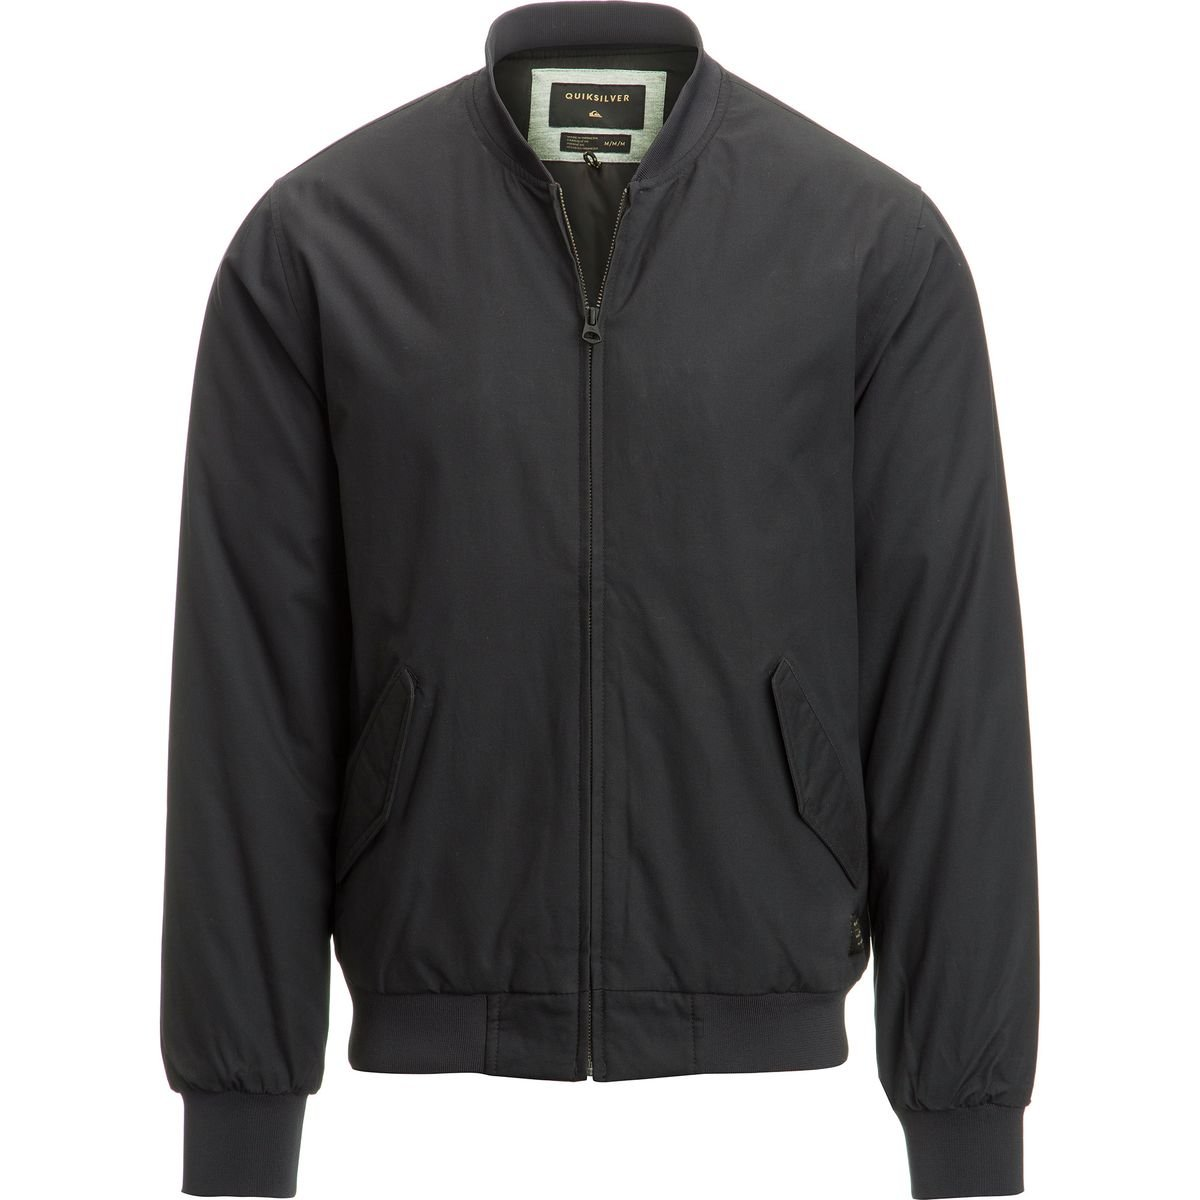 Quiksilver Men's Ogoki Bomber Winter Jacket, Tarmac, S